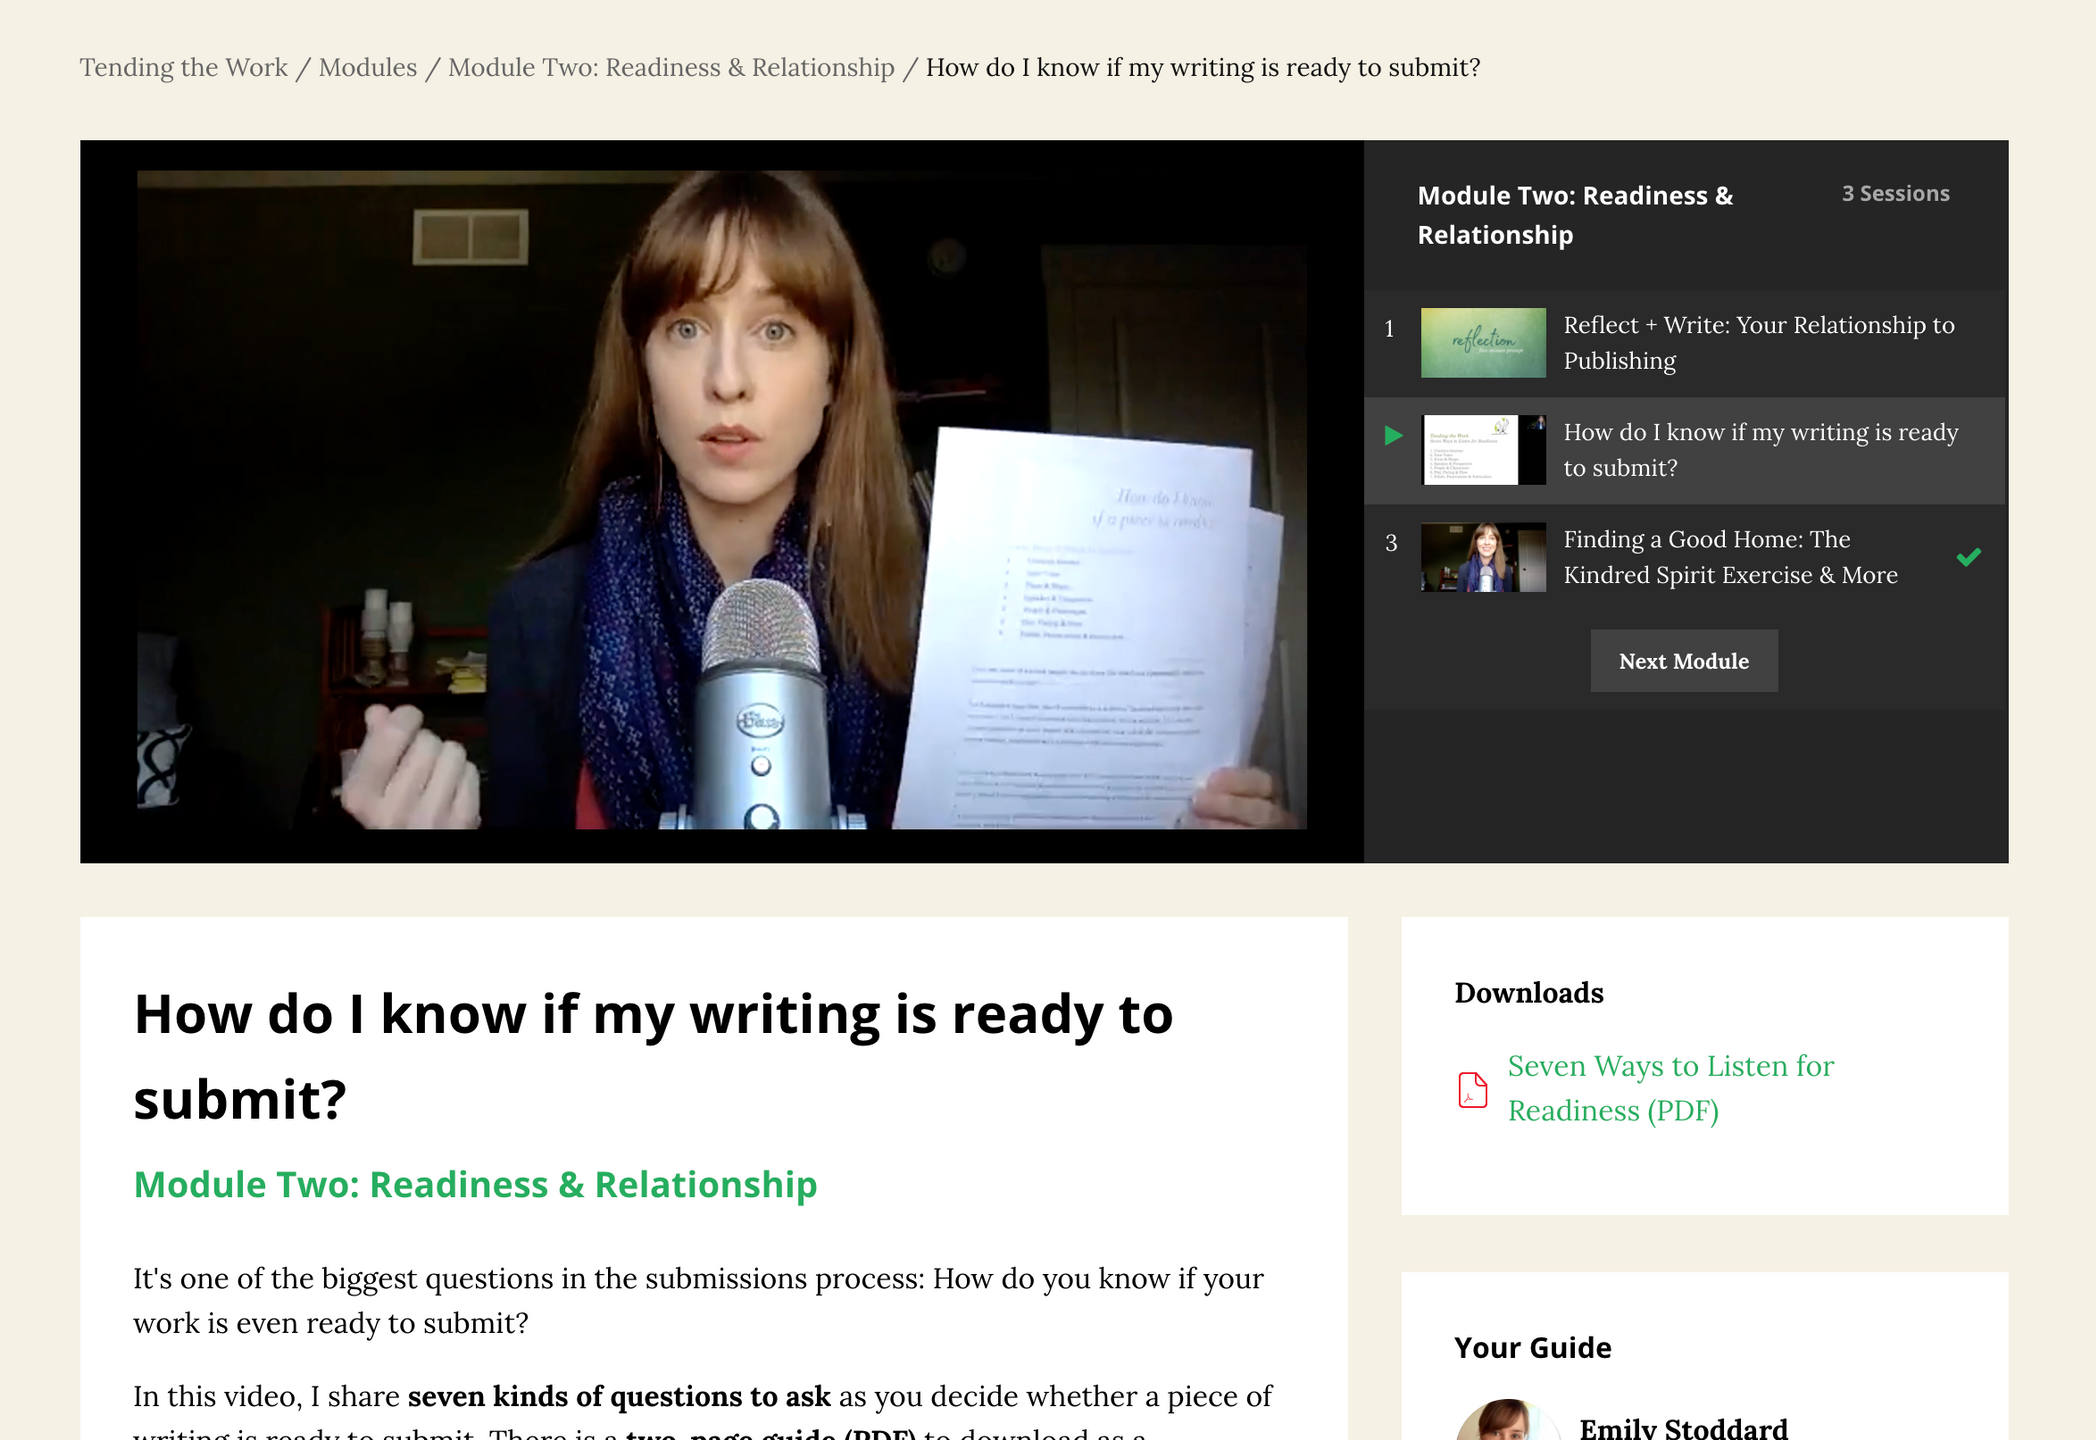 Image of private workshop area, with Emily at a microphone holding a piece of paper and talking about how to know if your writing is ready to submit